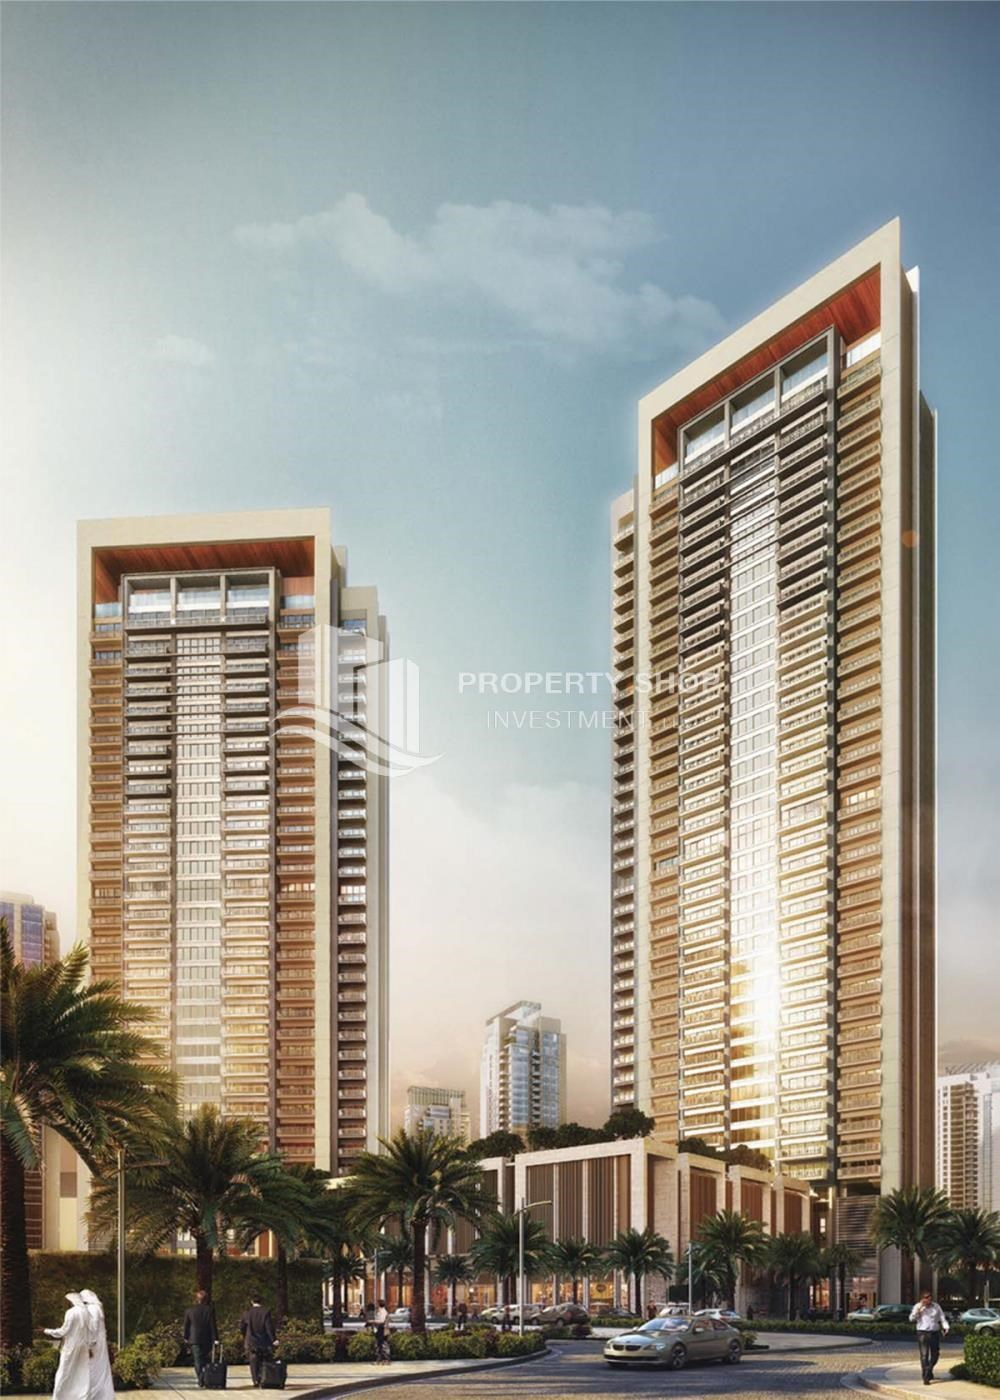 Property - Brand new apartment located in the heart of Dubai. Contact PSI for details.